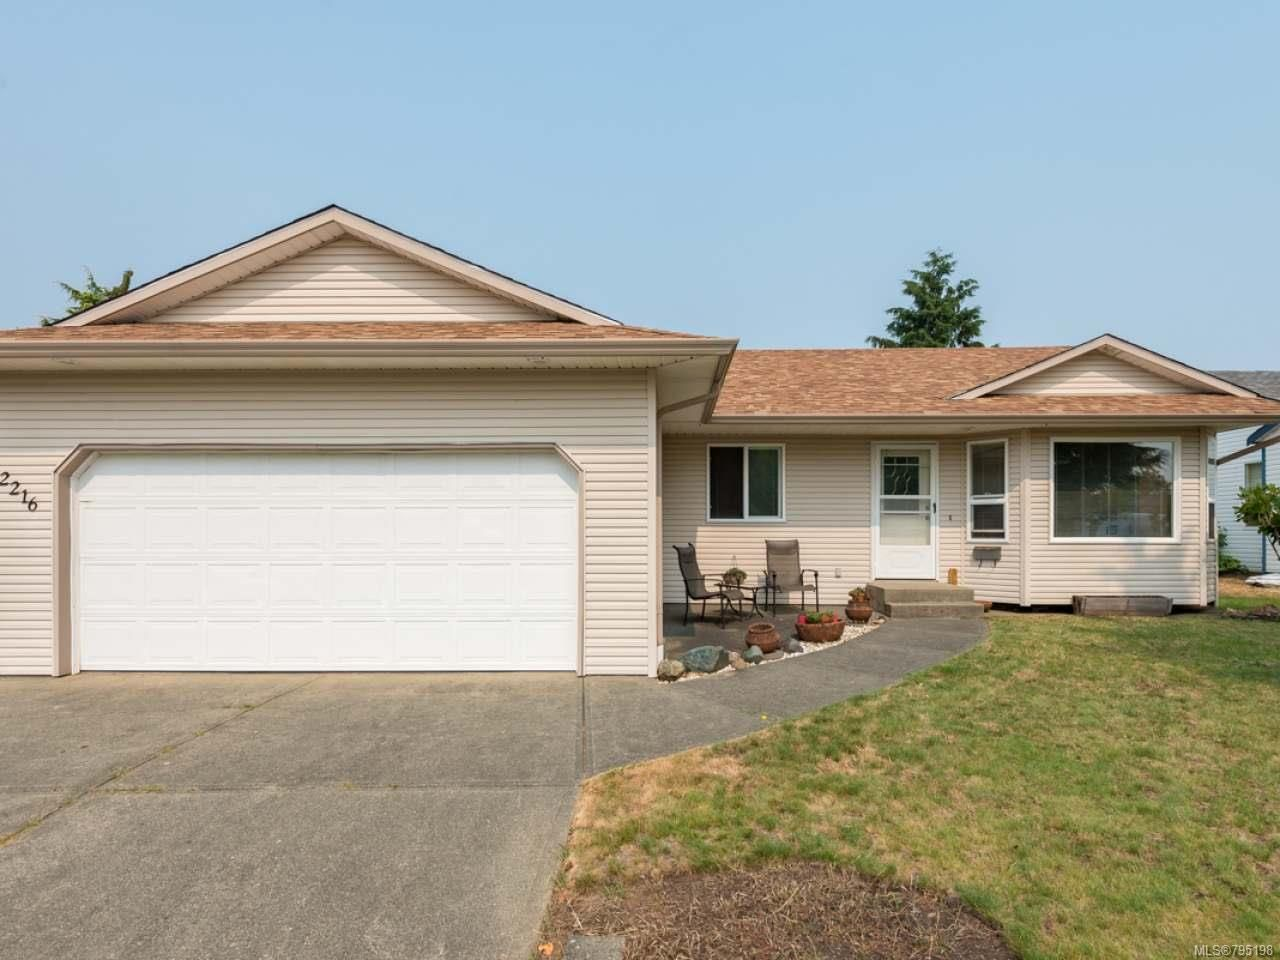 Main Photo: 2216 E 9th St in COURTENAY: CV Courtenay East House for sale (Comox Valley)  : MLS®# 795198